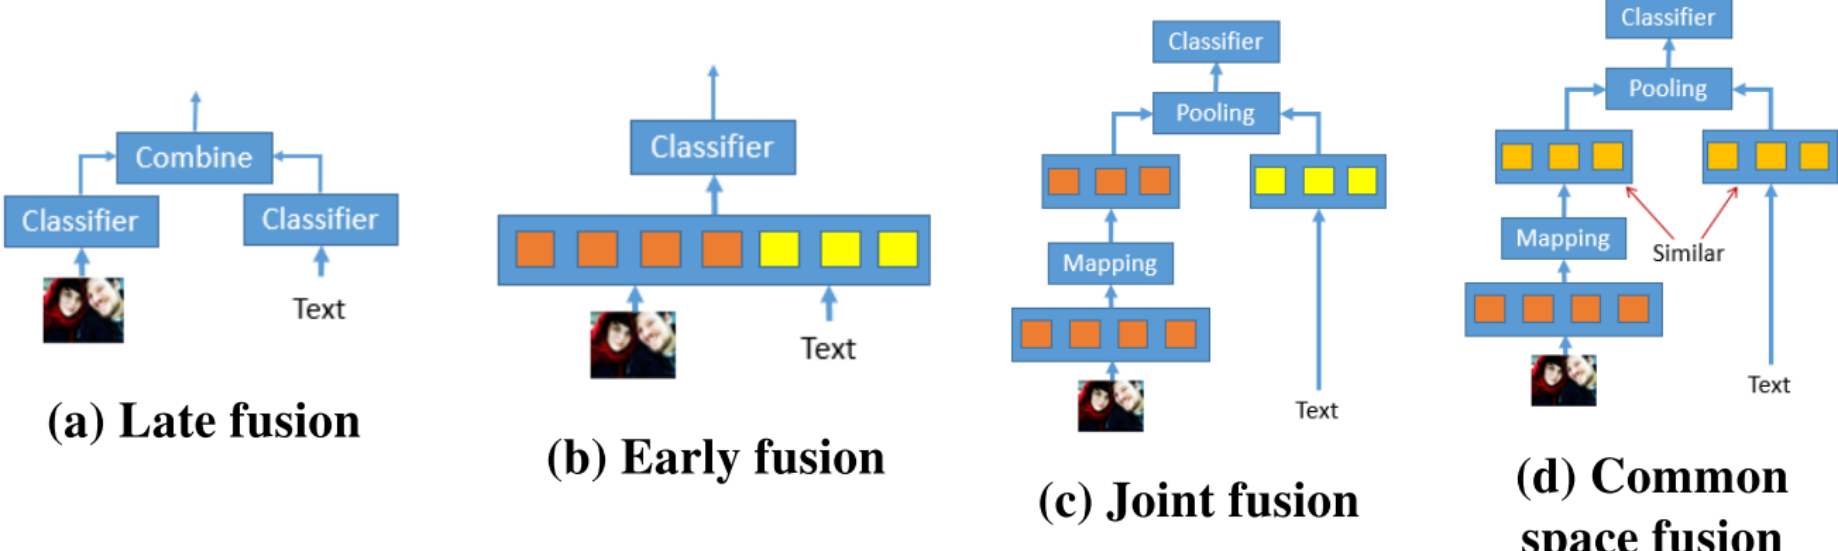 Detecting Emotions with CNN Fusion Models - dair ai - Medium